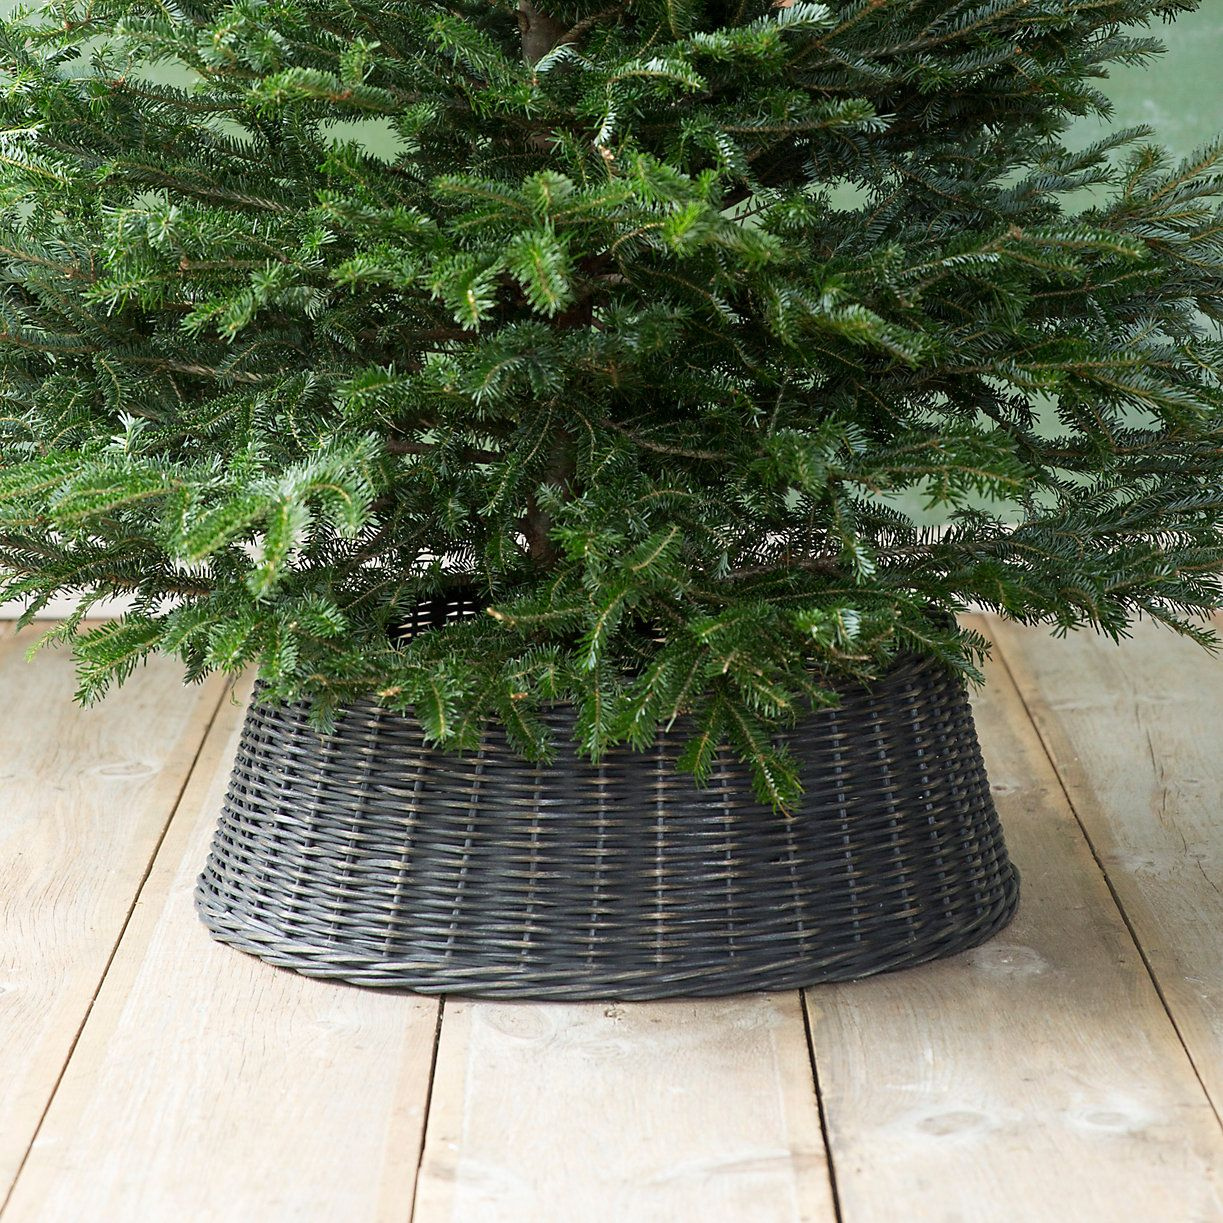 Wicker Basket Tree Skirt Black